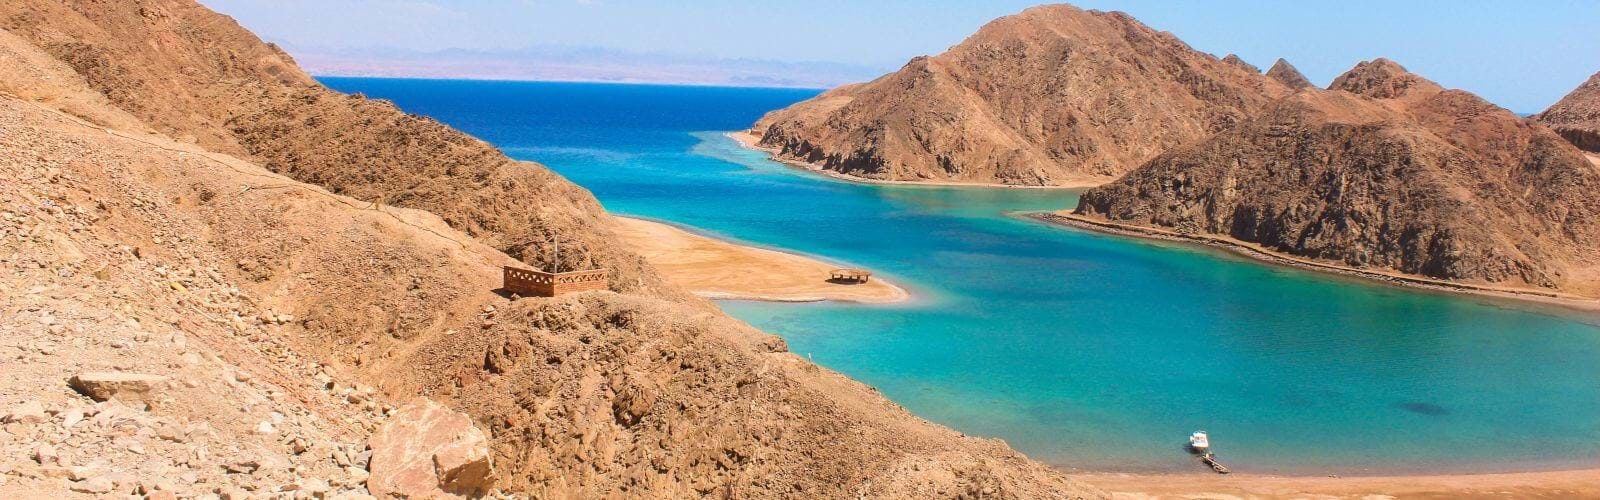 Sinai Peninsula | Things to do in Sinai